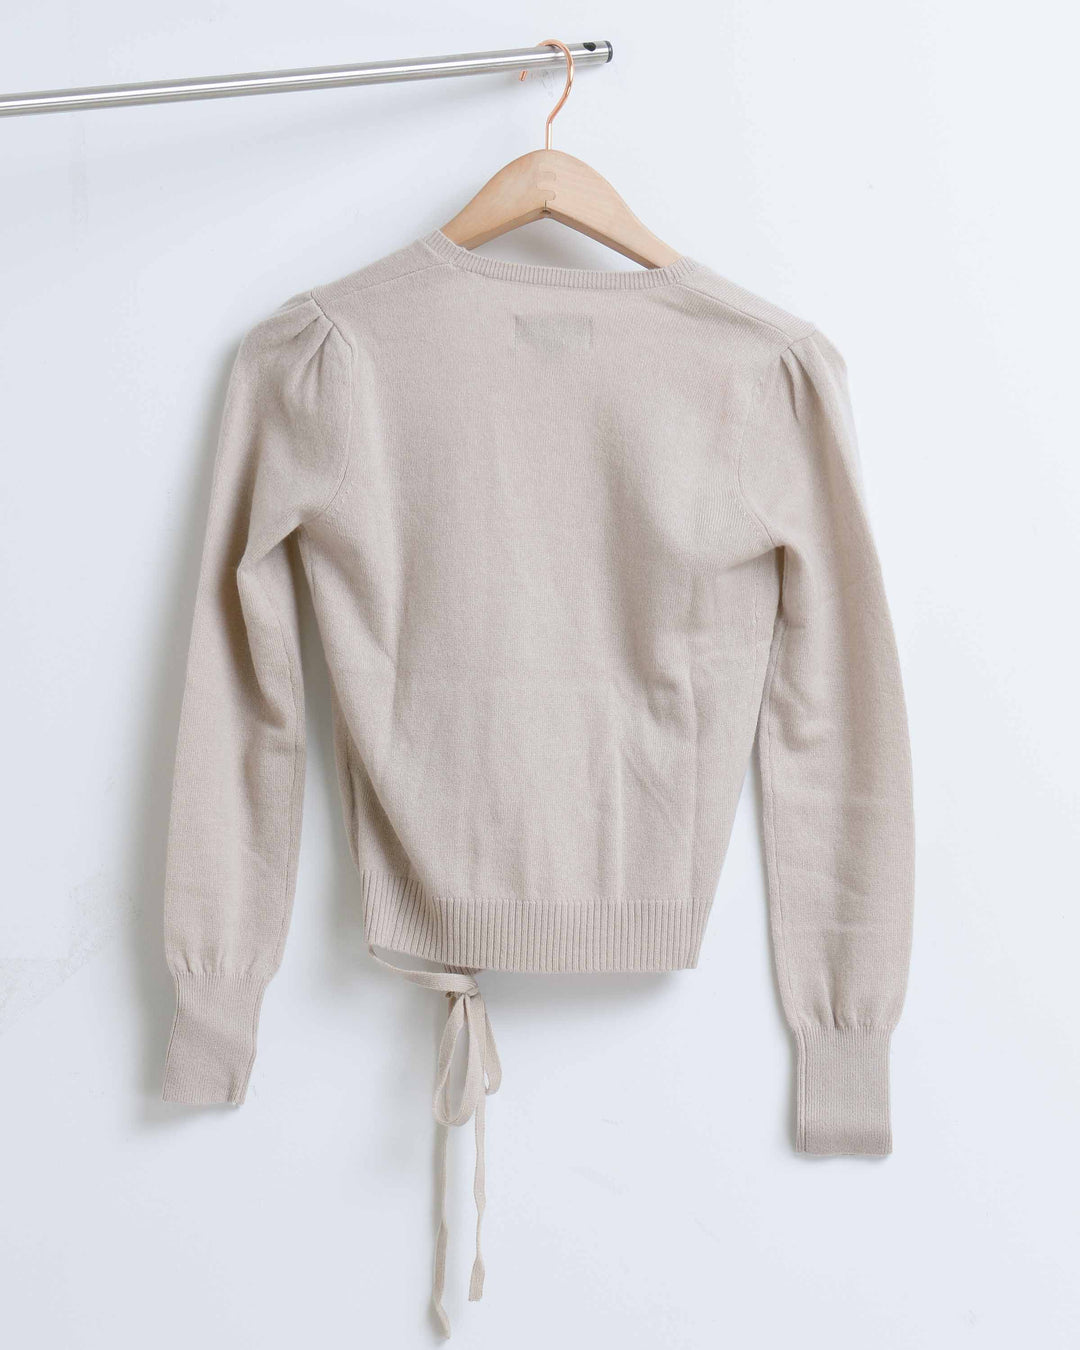 Wheat Met Cashmere Sweater